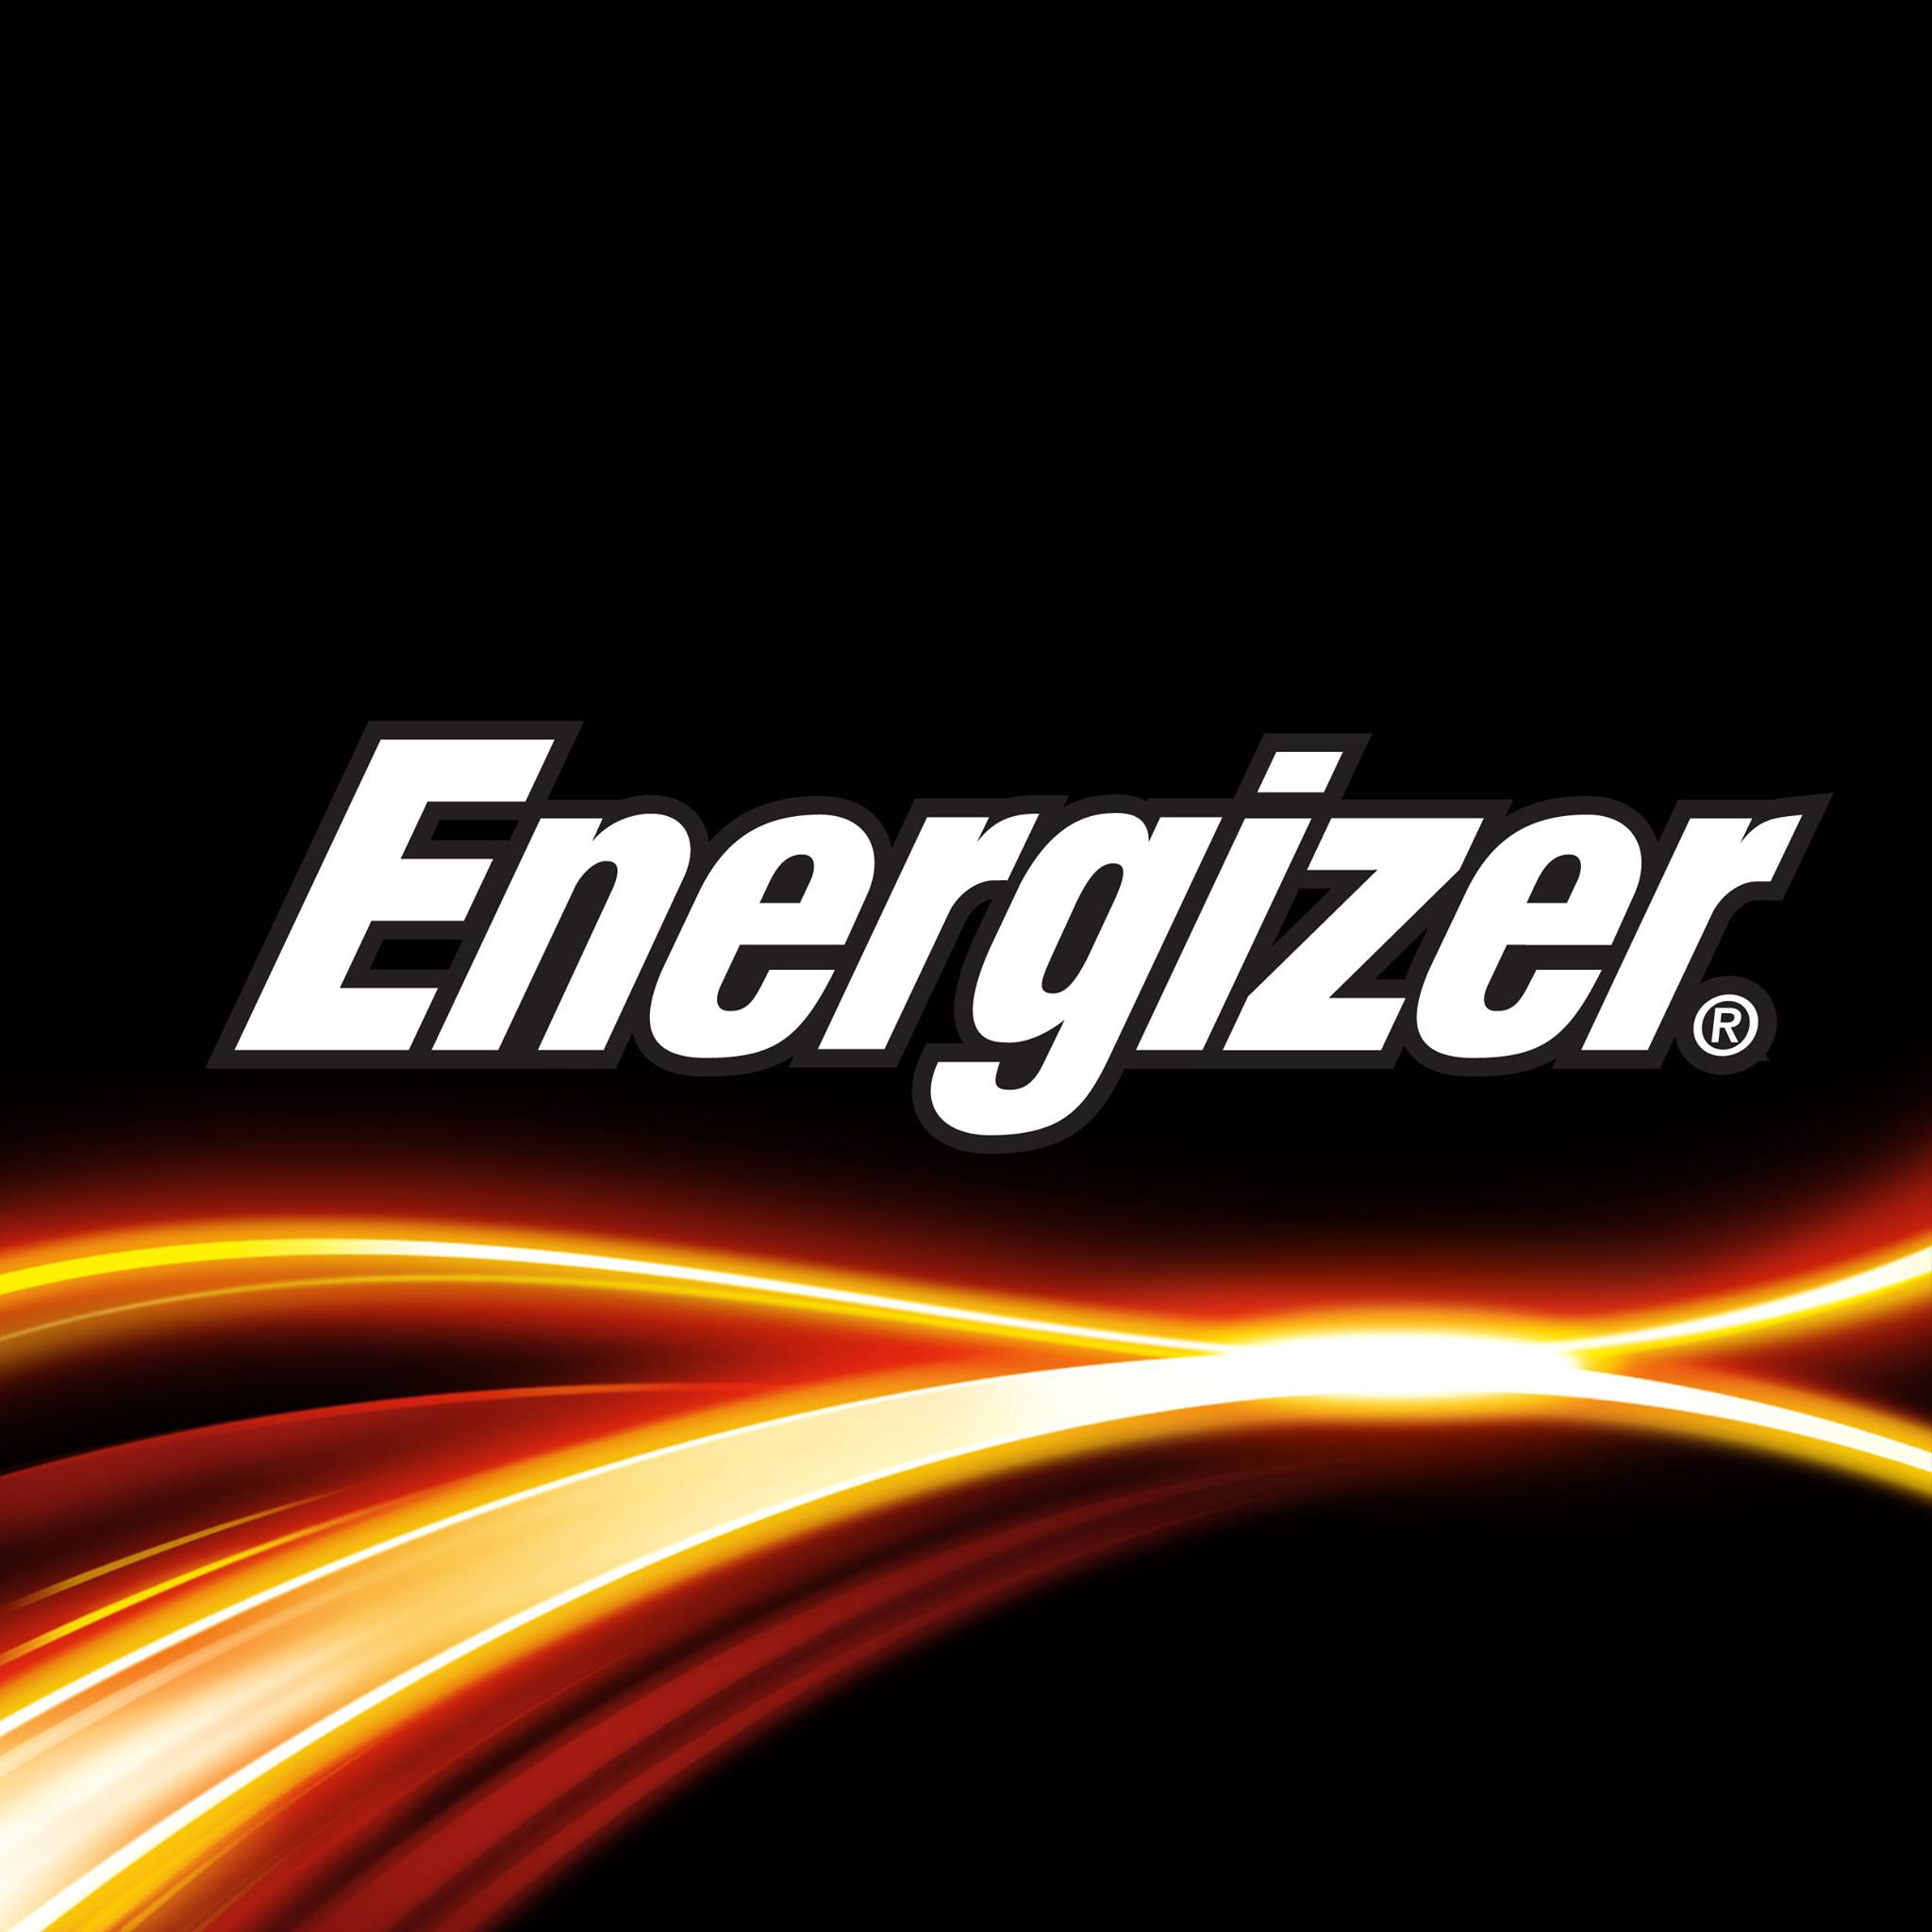 fee55d28a21c St. Louis  PRNewswire  — Energizer Holdings